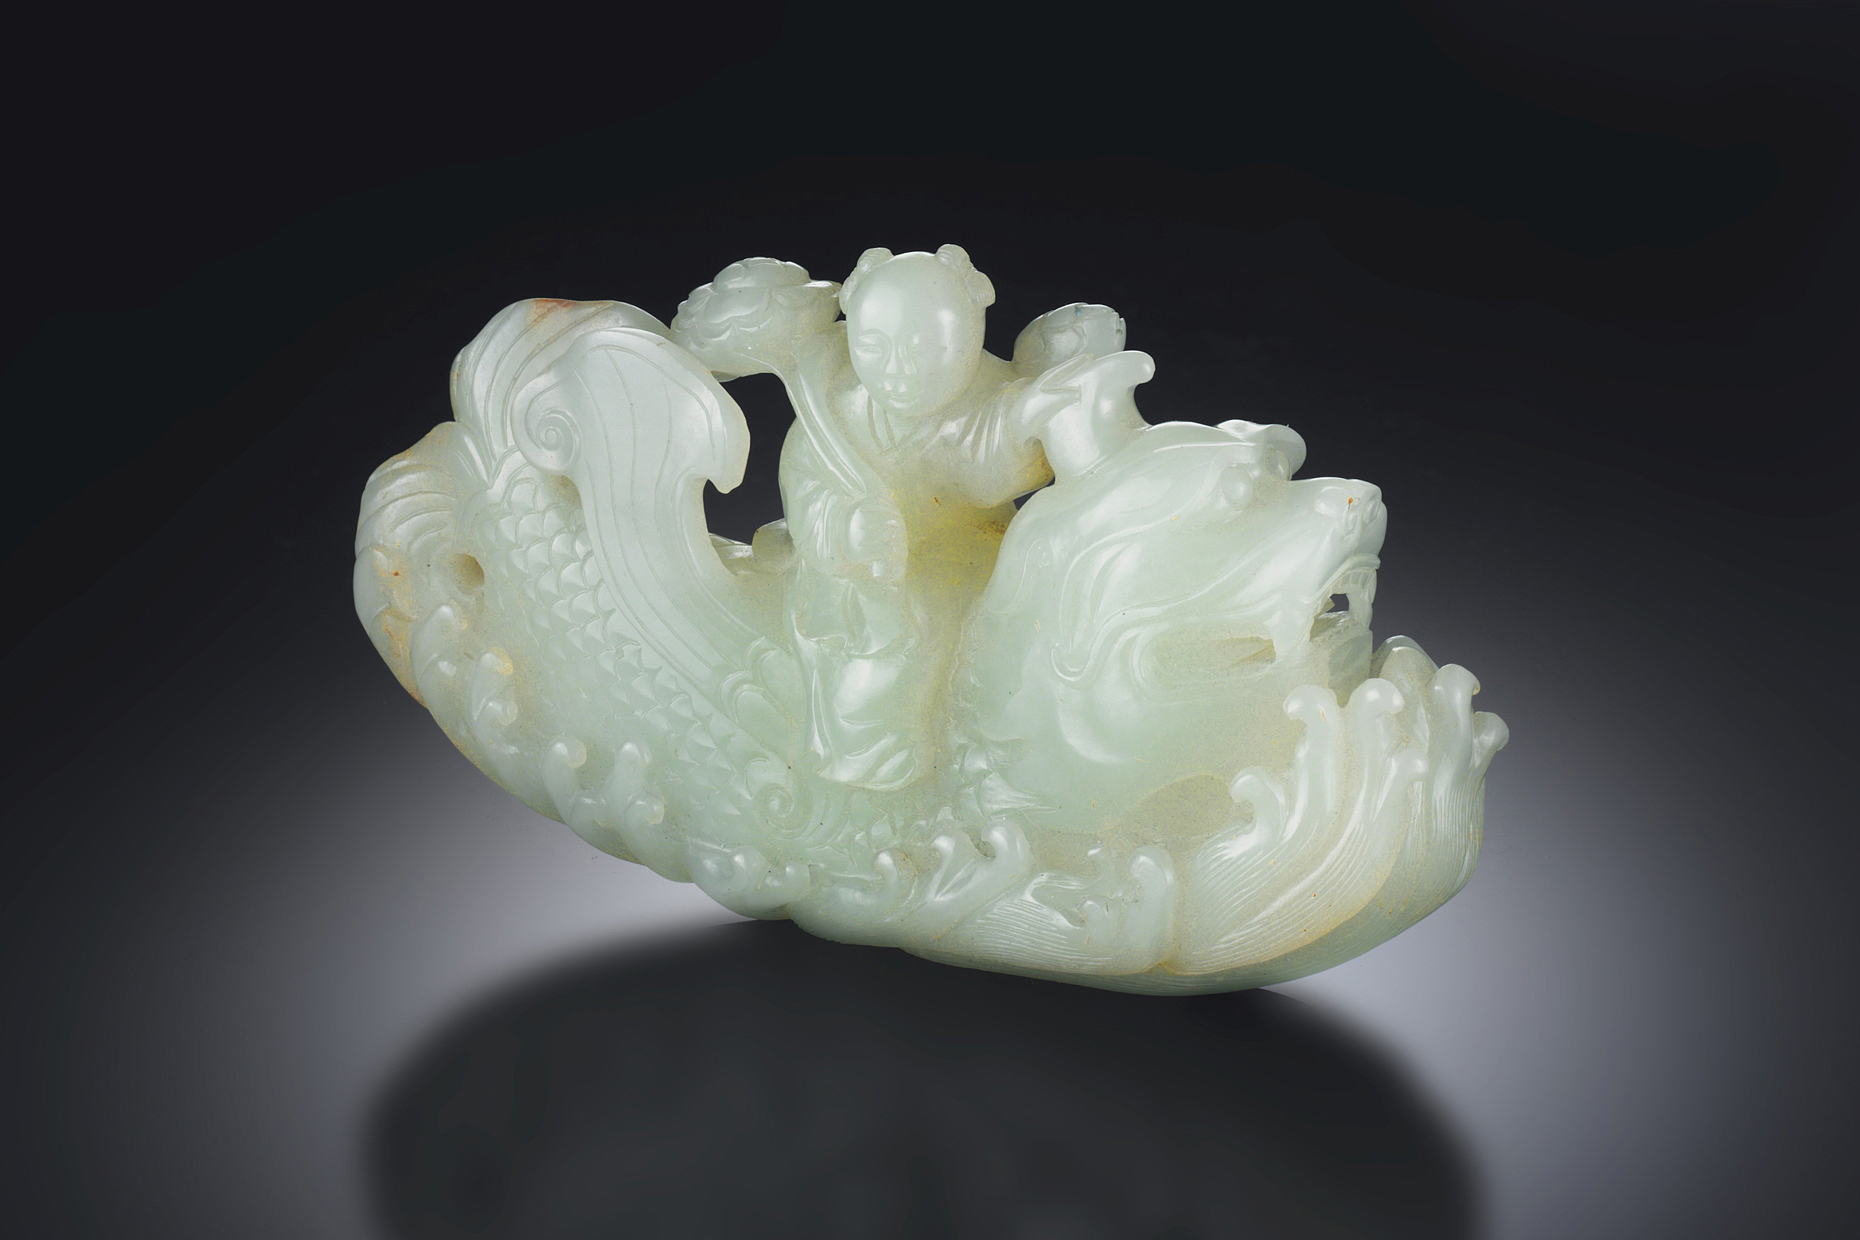 An ancient Chinese jade carving of a man riding a dragon